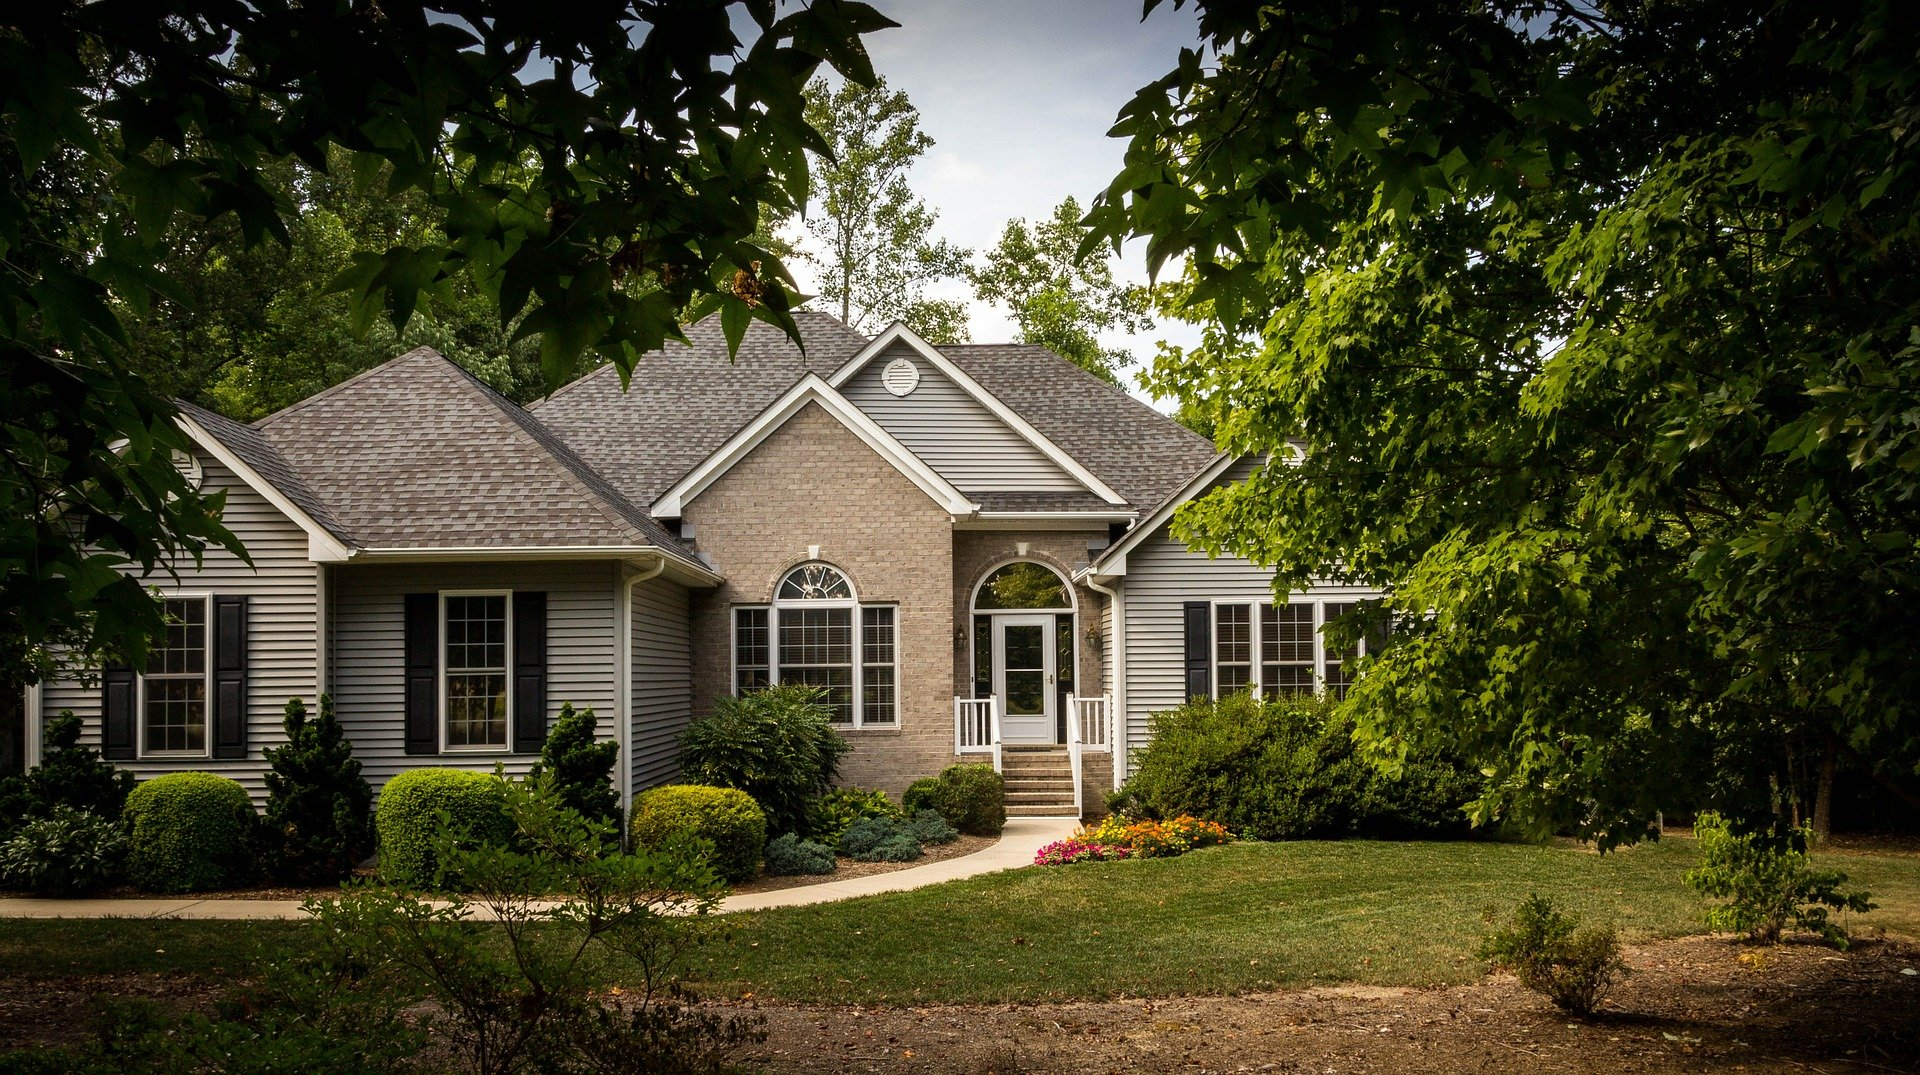 large grey house with green lawn in front; 4 Home Maintenance Tips To Keep Your Home In Shape